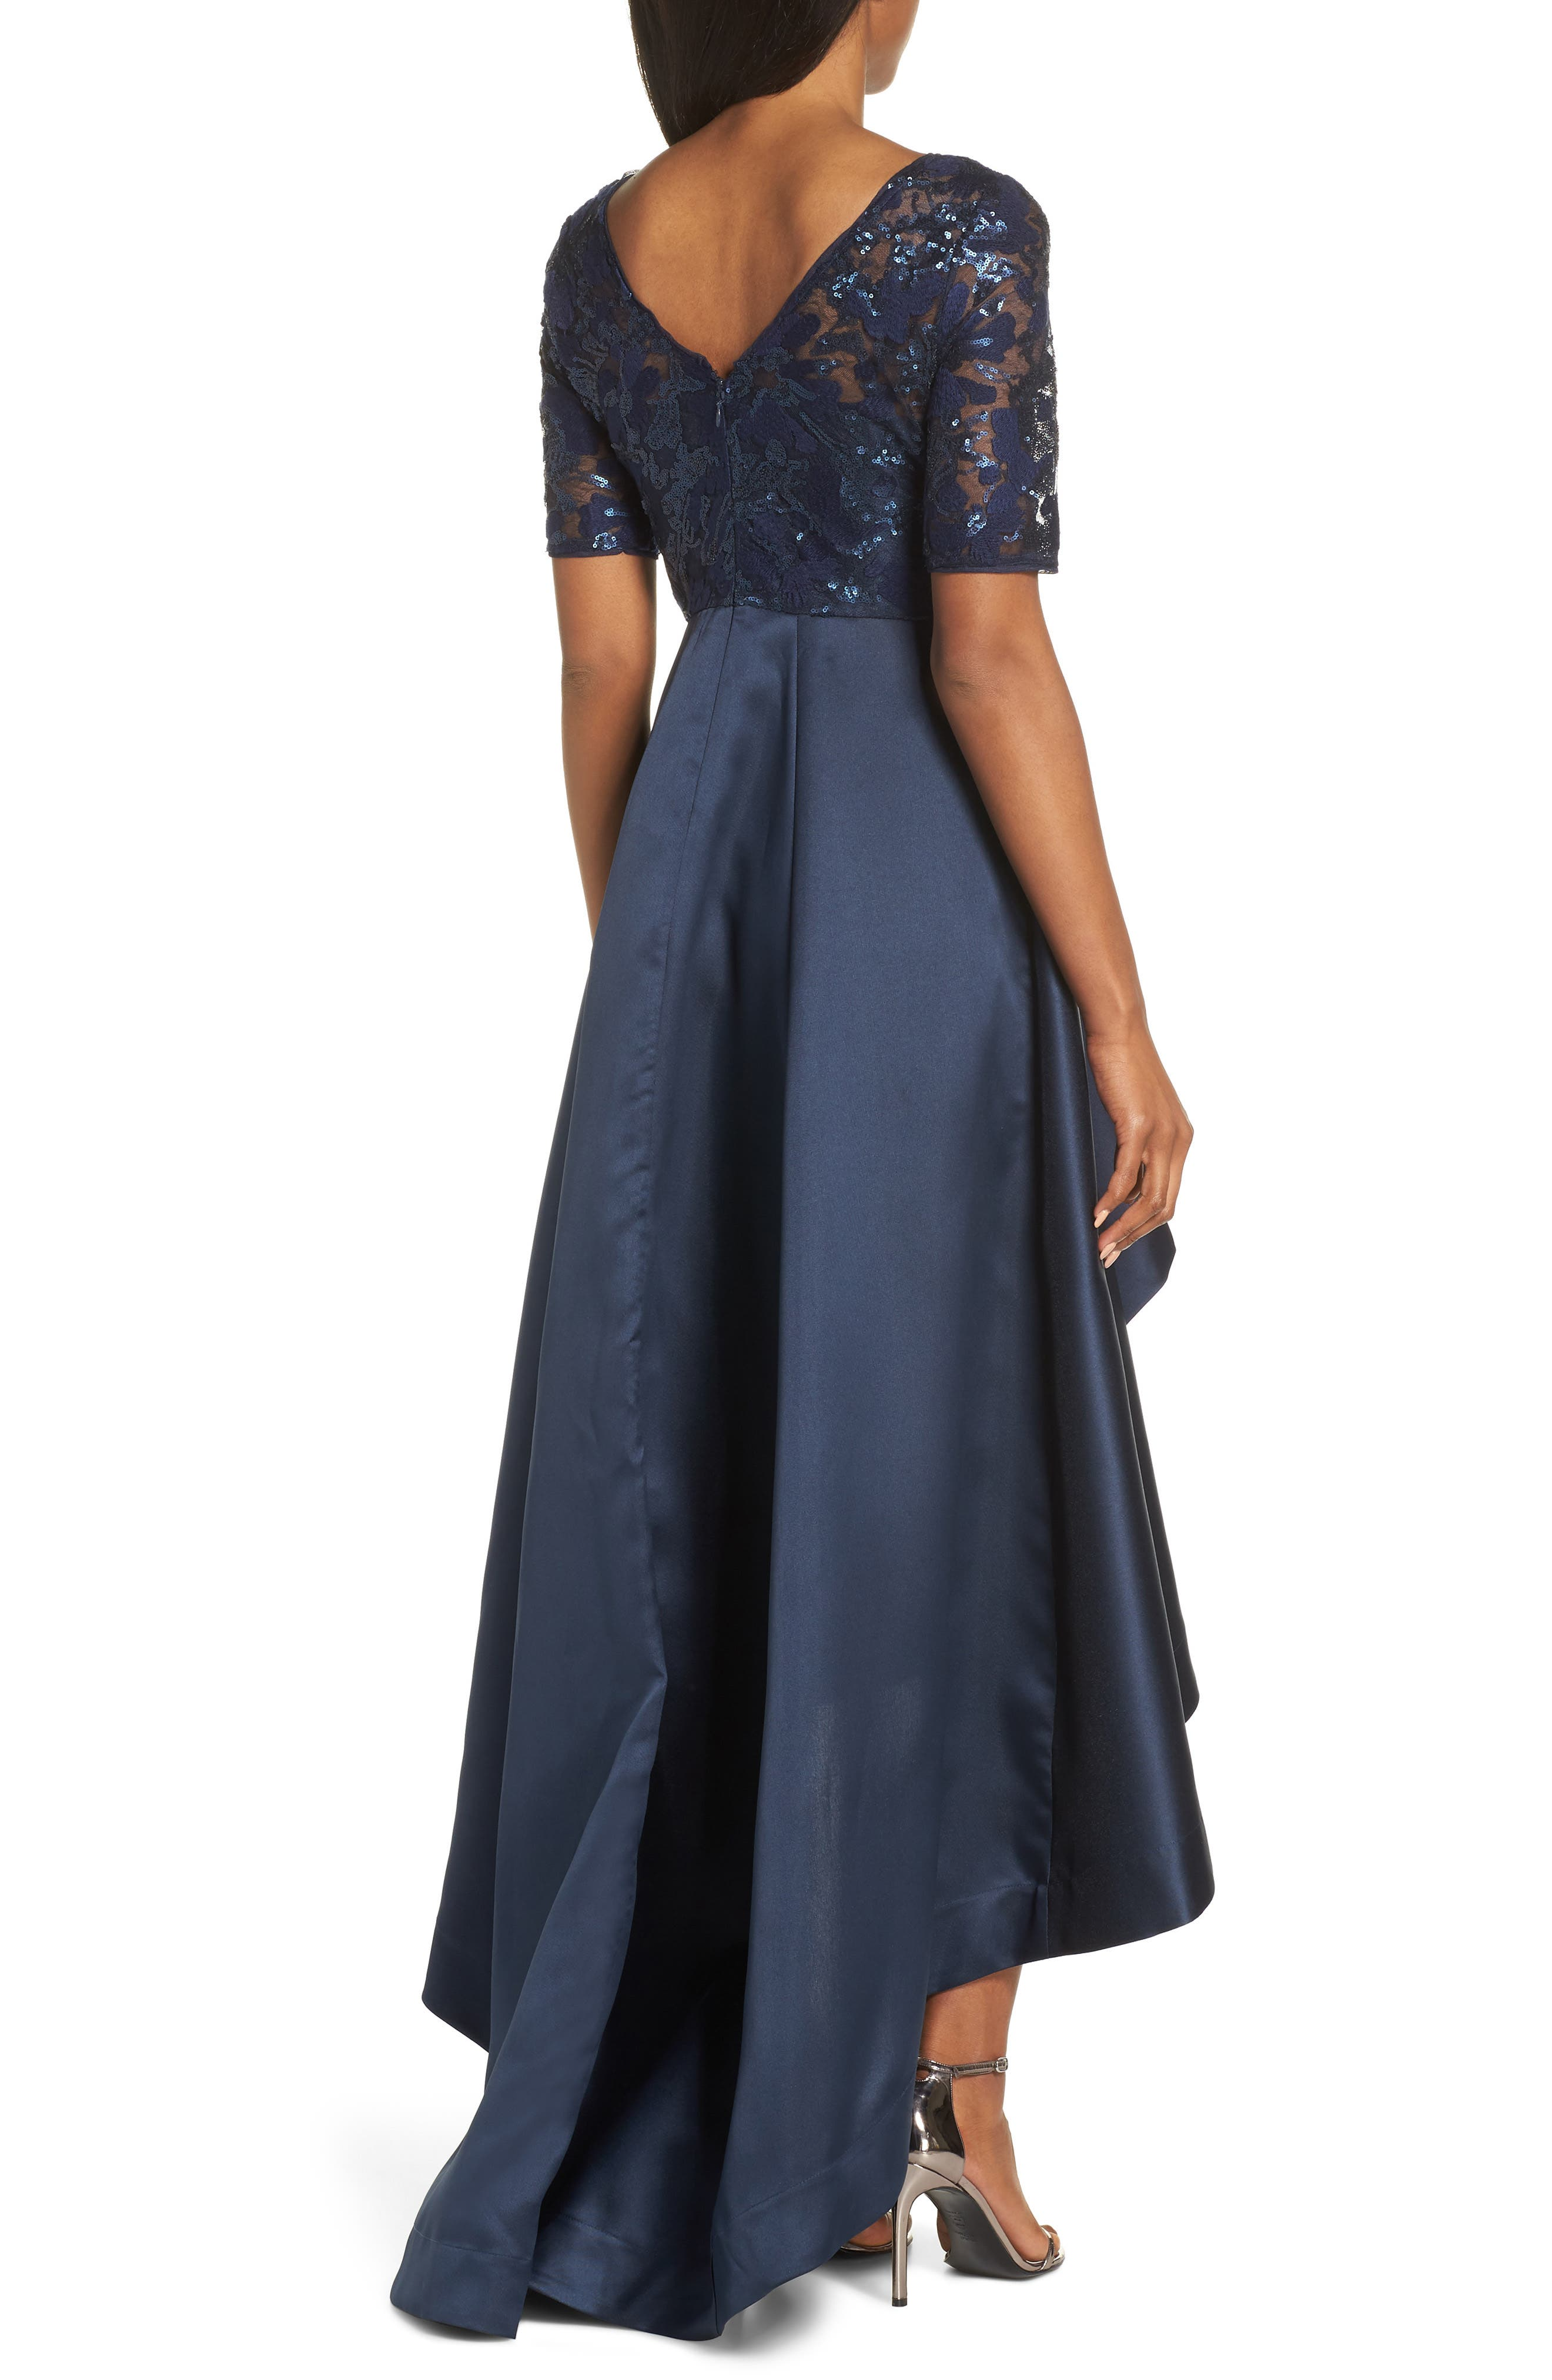 ADRIANNA PAPELL, Sequin Lace High/Low Evening Dress, Alternate thumbnail 2, color, MIDNIGHT